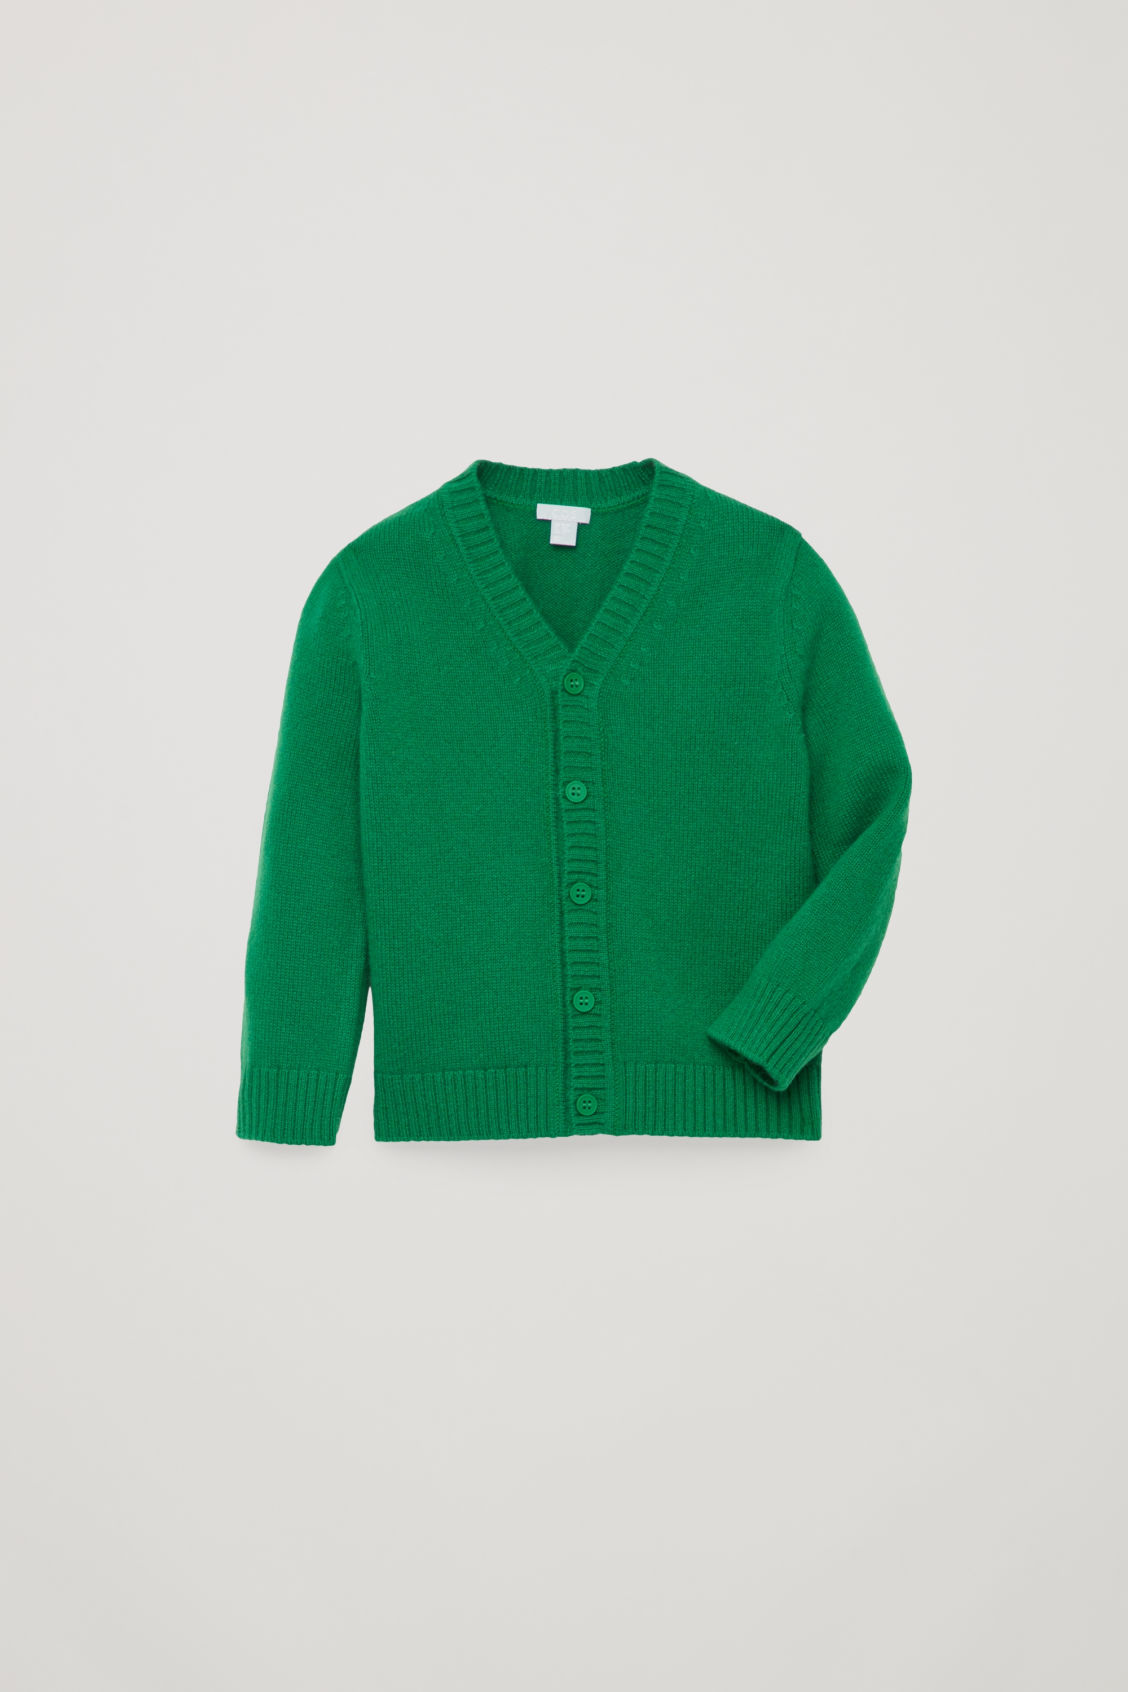 Detailed image of Cos  in green